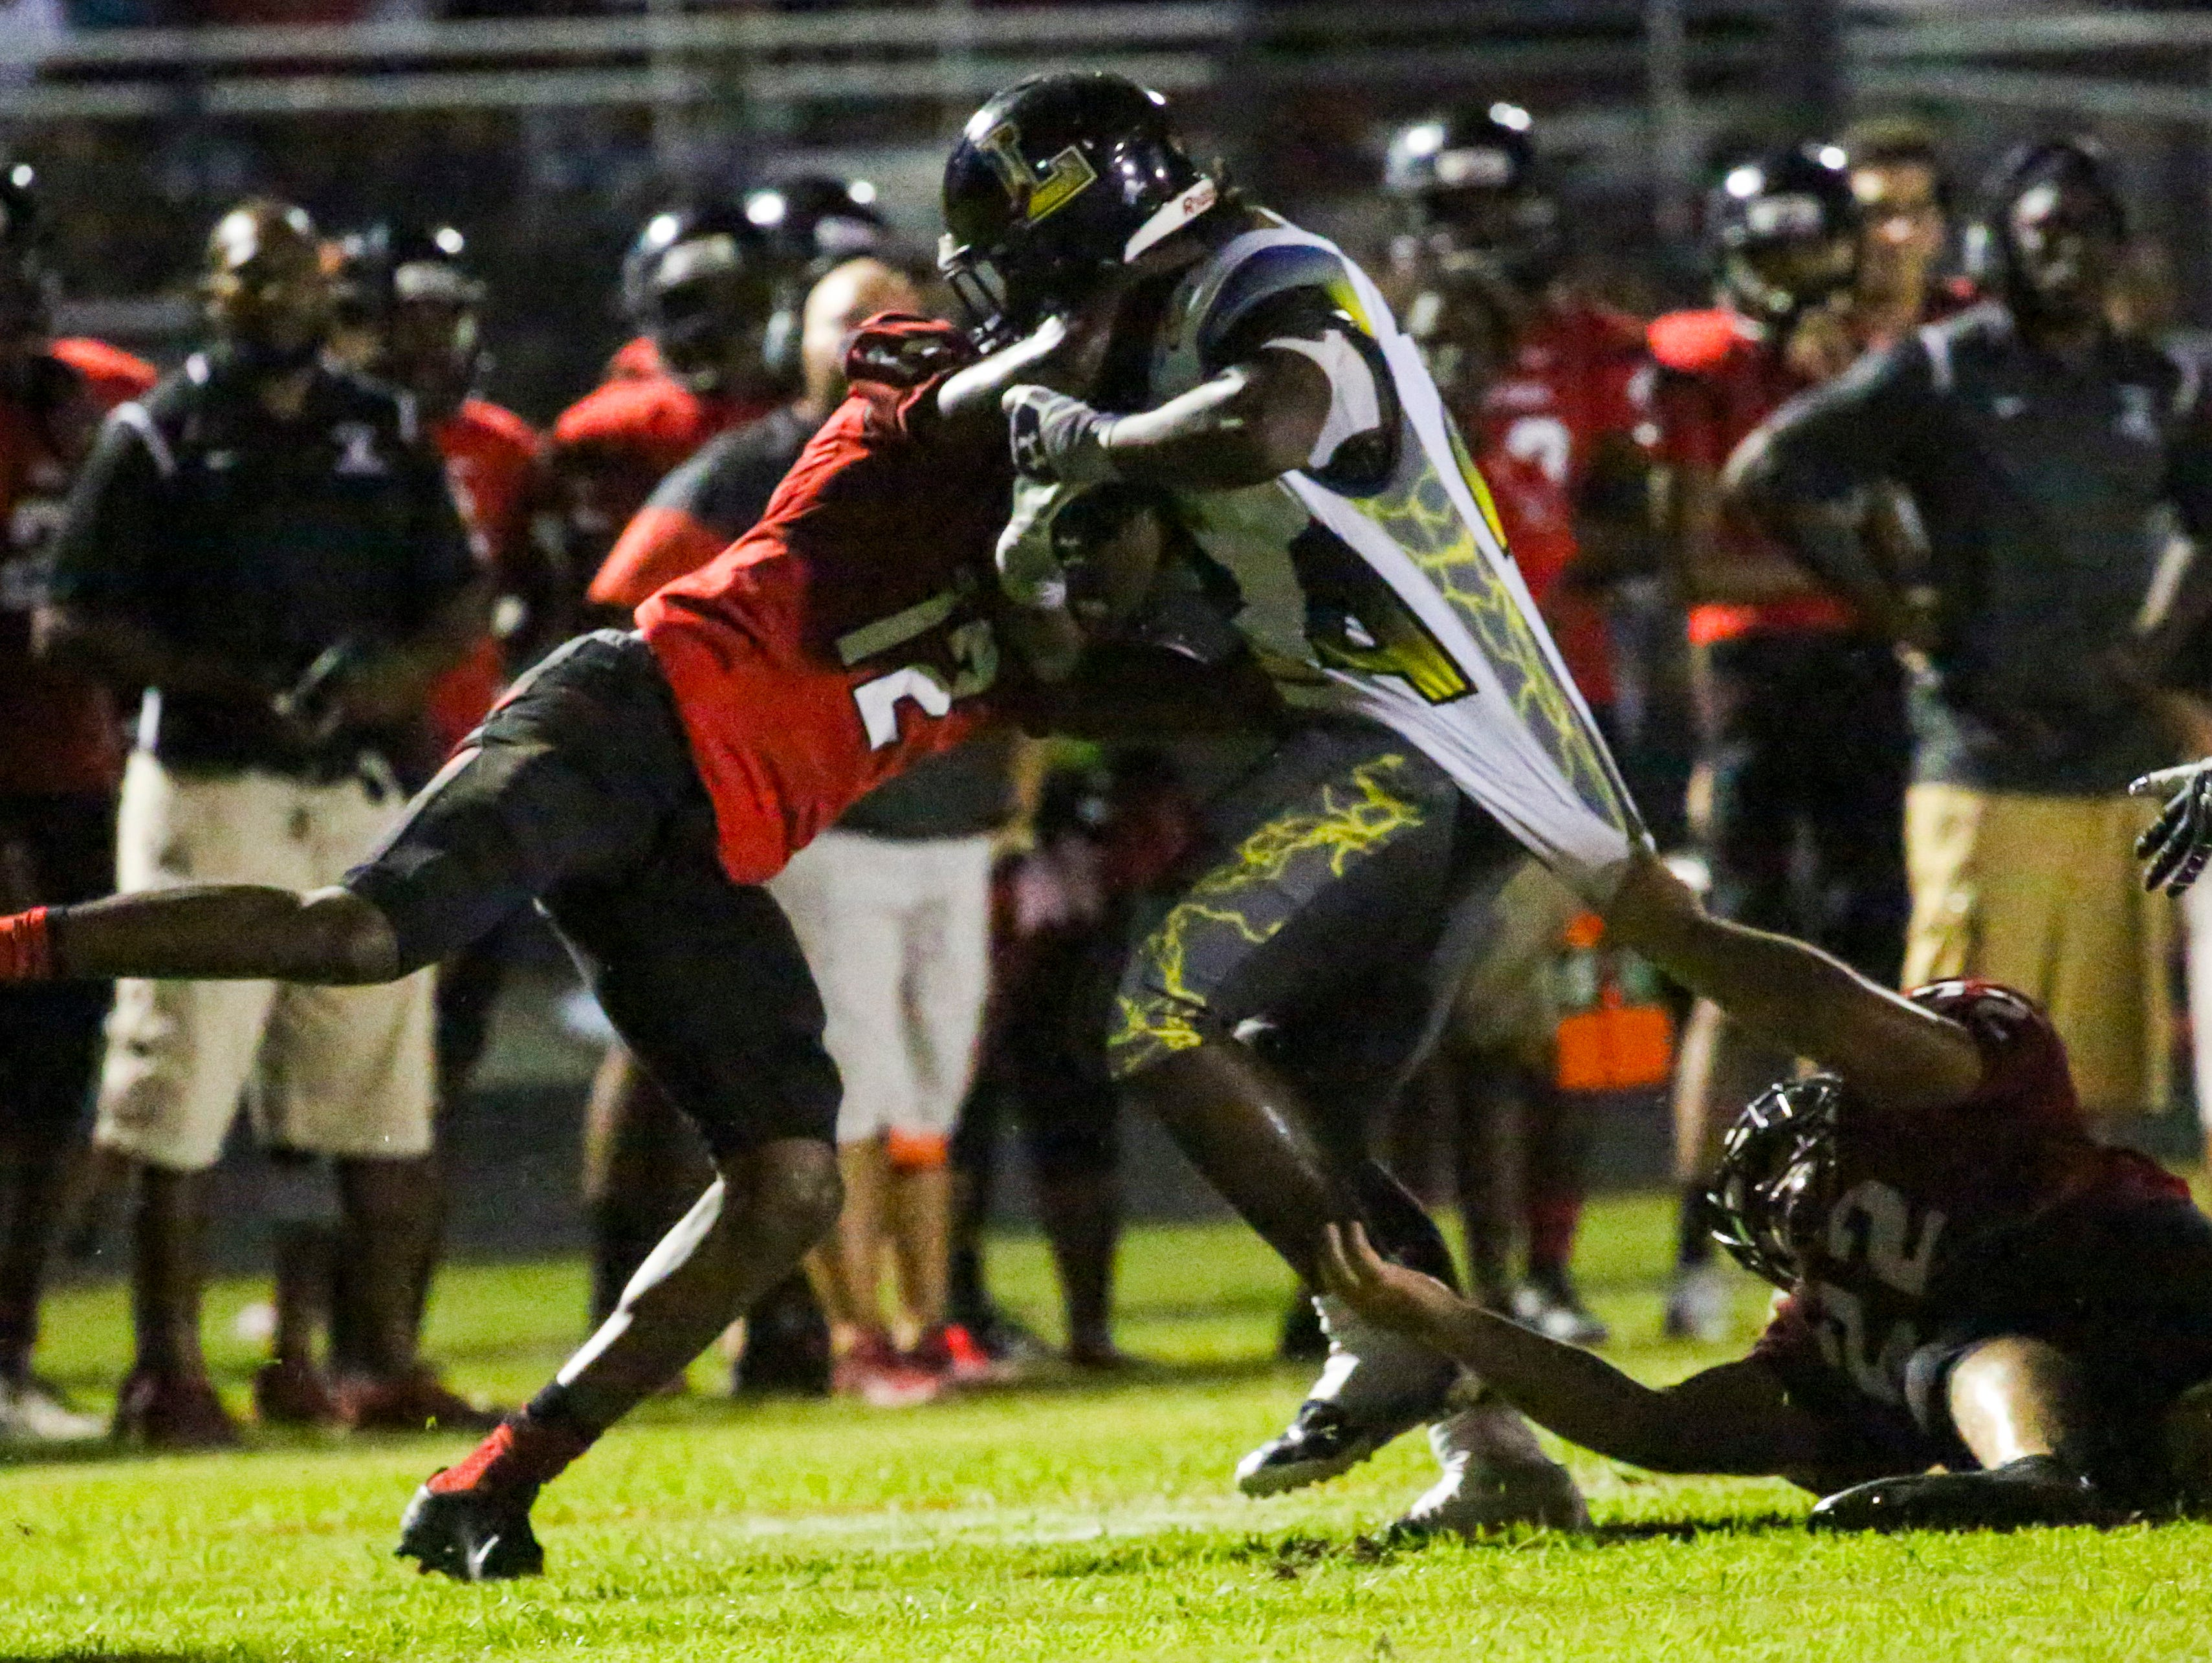 South Fort Myers, which held off Lehigh 20-16 last week, is ranked No. 3 in the Lee County Fab 5.